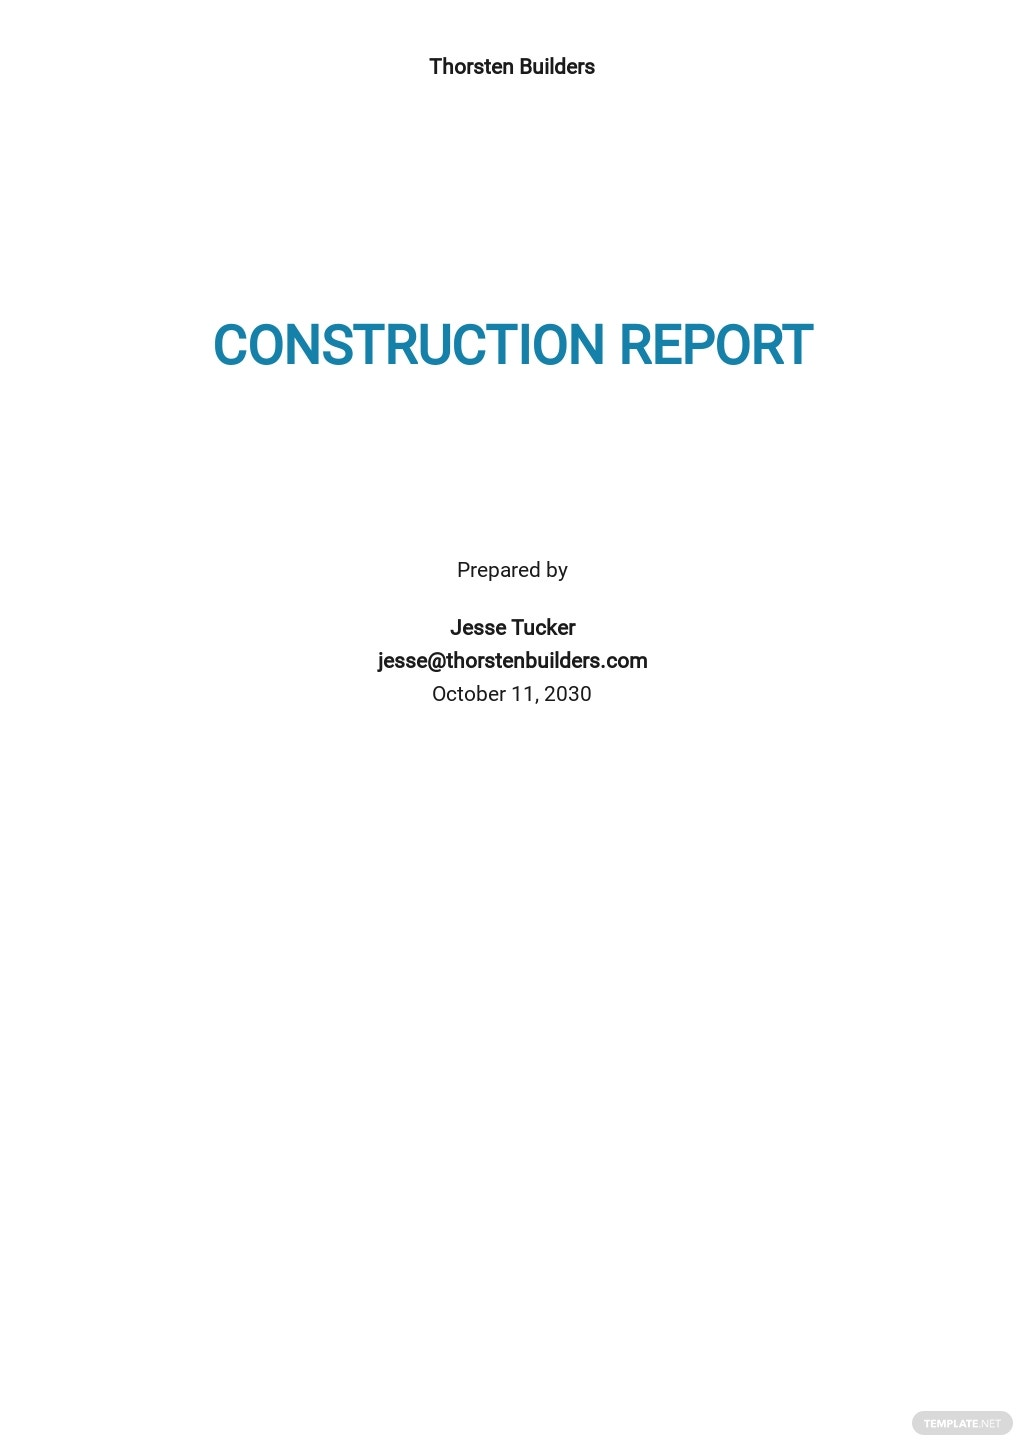 Sample Construction Report Template